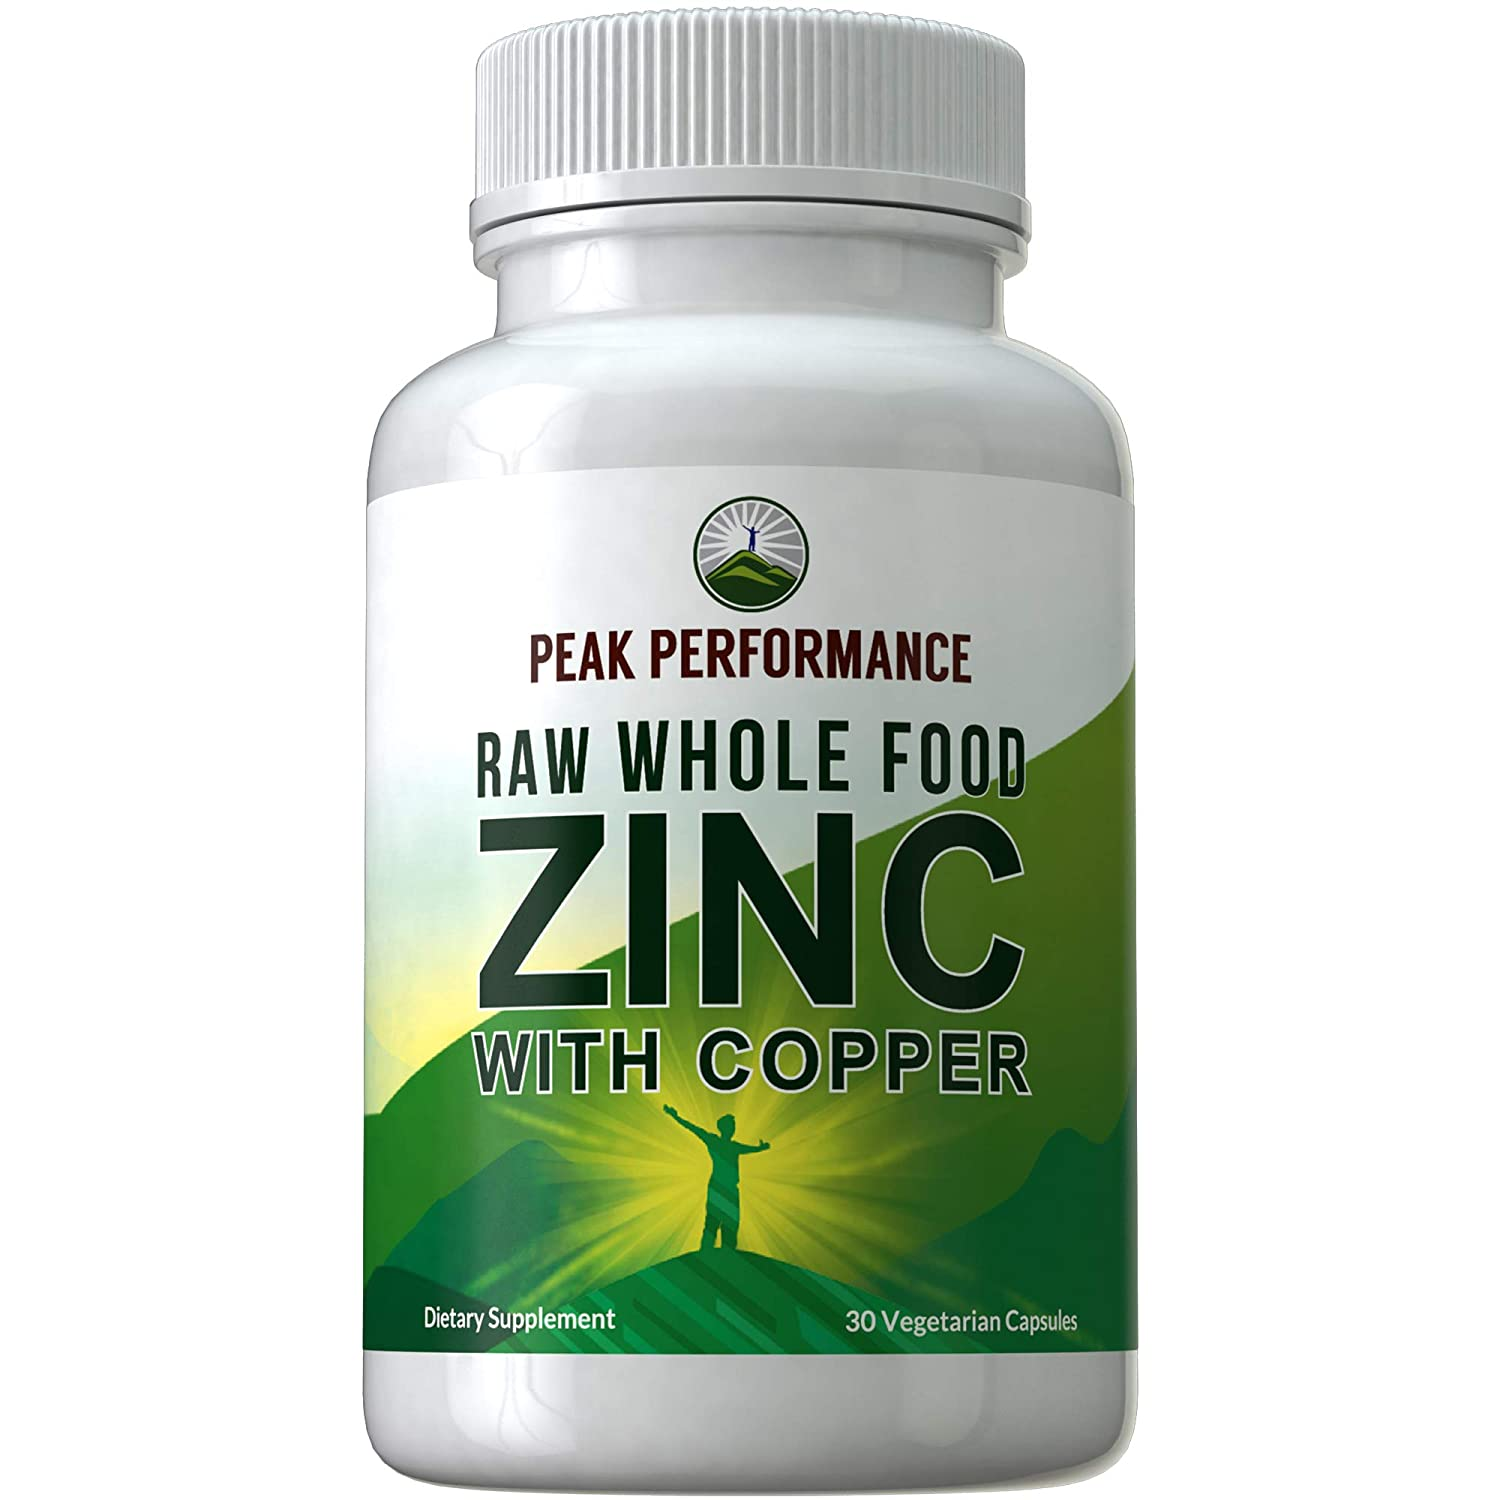 Raw Whole Food Zinc Supplement + Copper by Peak Performance. Two Essential Minerals for Antioxidant and Immune Support + 25 Organic Fruit and Vegetable Ingredients. Vitamin Capsules, Pills, Tablets